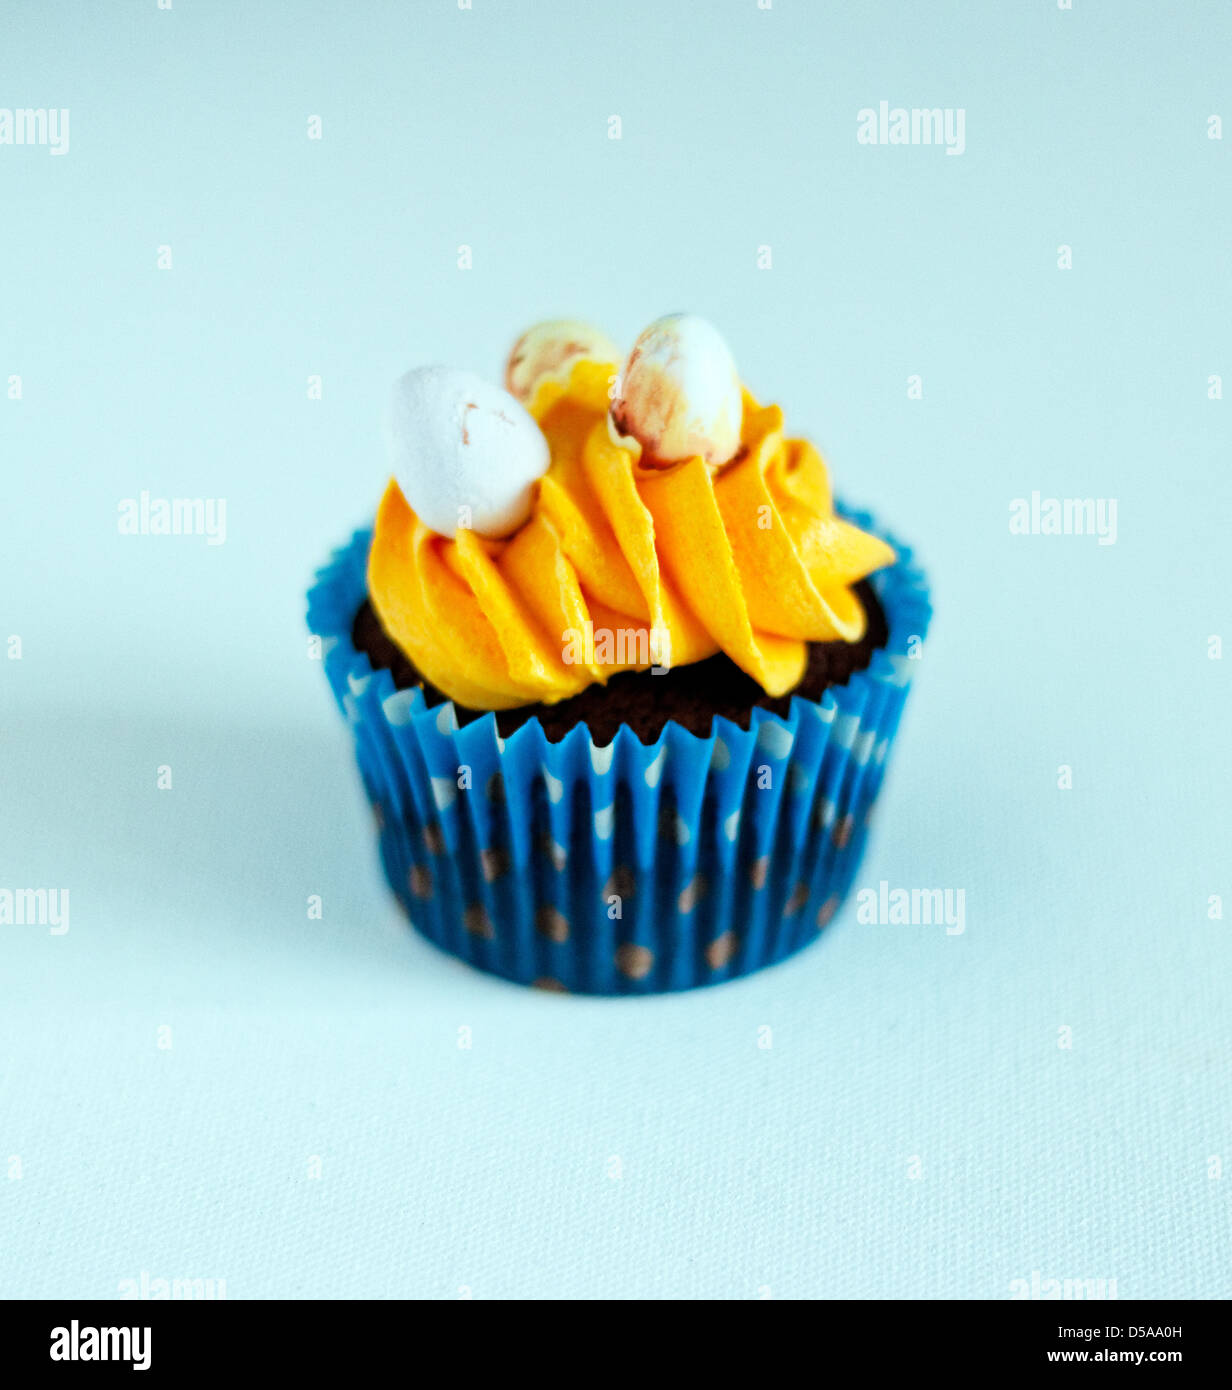 Cupcake with buttercream icing - Stock Image